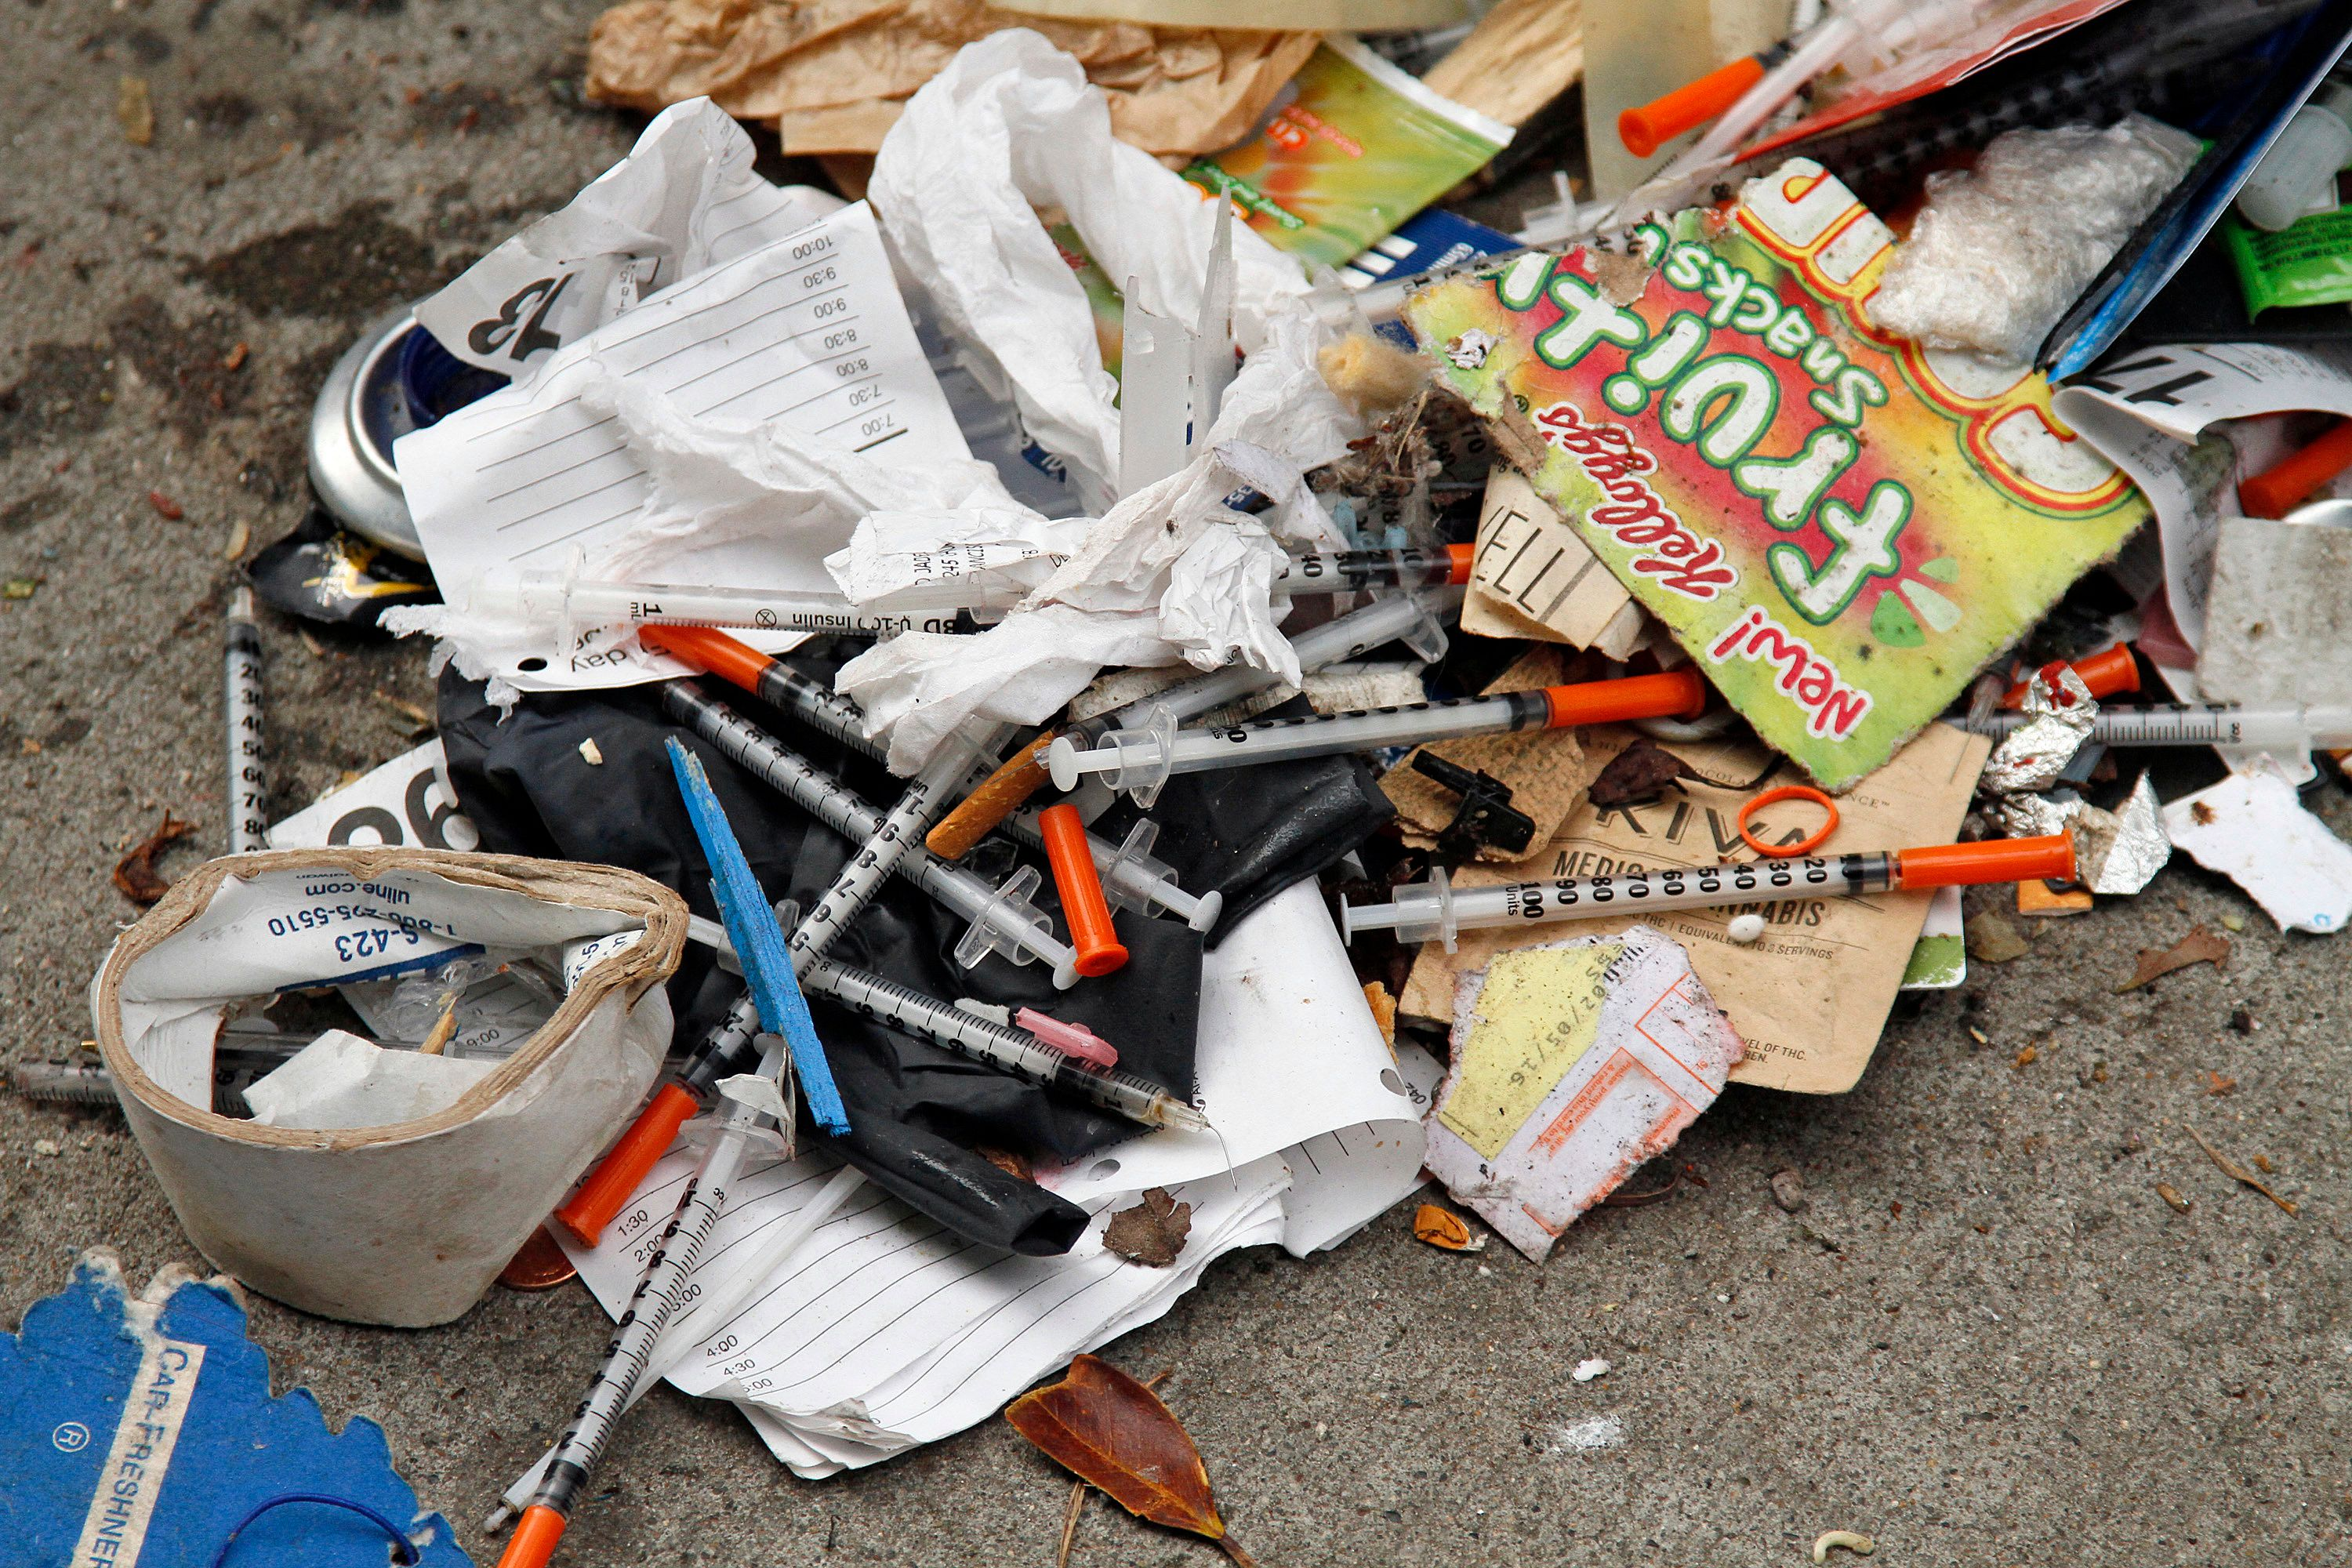 FILE - In this Feb. 26, 2016, file photo, a number of syringes are scattered in the remains of a tent city being cleared by city workers along Division Street in San Francisco. Sean Miller, a 24-year-old transplant, is offering a free app to make it easier for people to report waste - human and otherwise - and used needles and anything else gross on the famously dirty streets of San Francisco. (AP Photo/Eric Risberg, File)